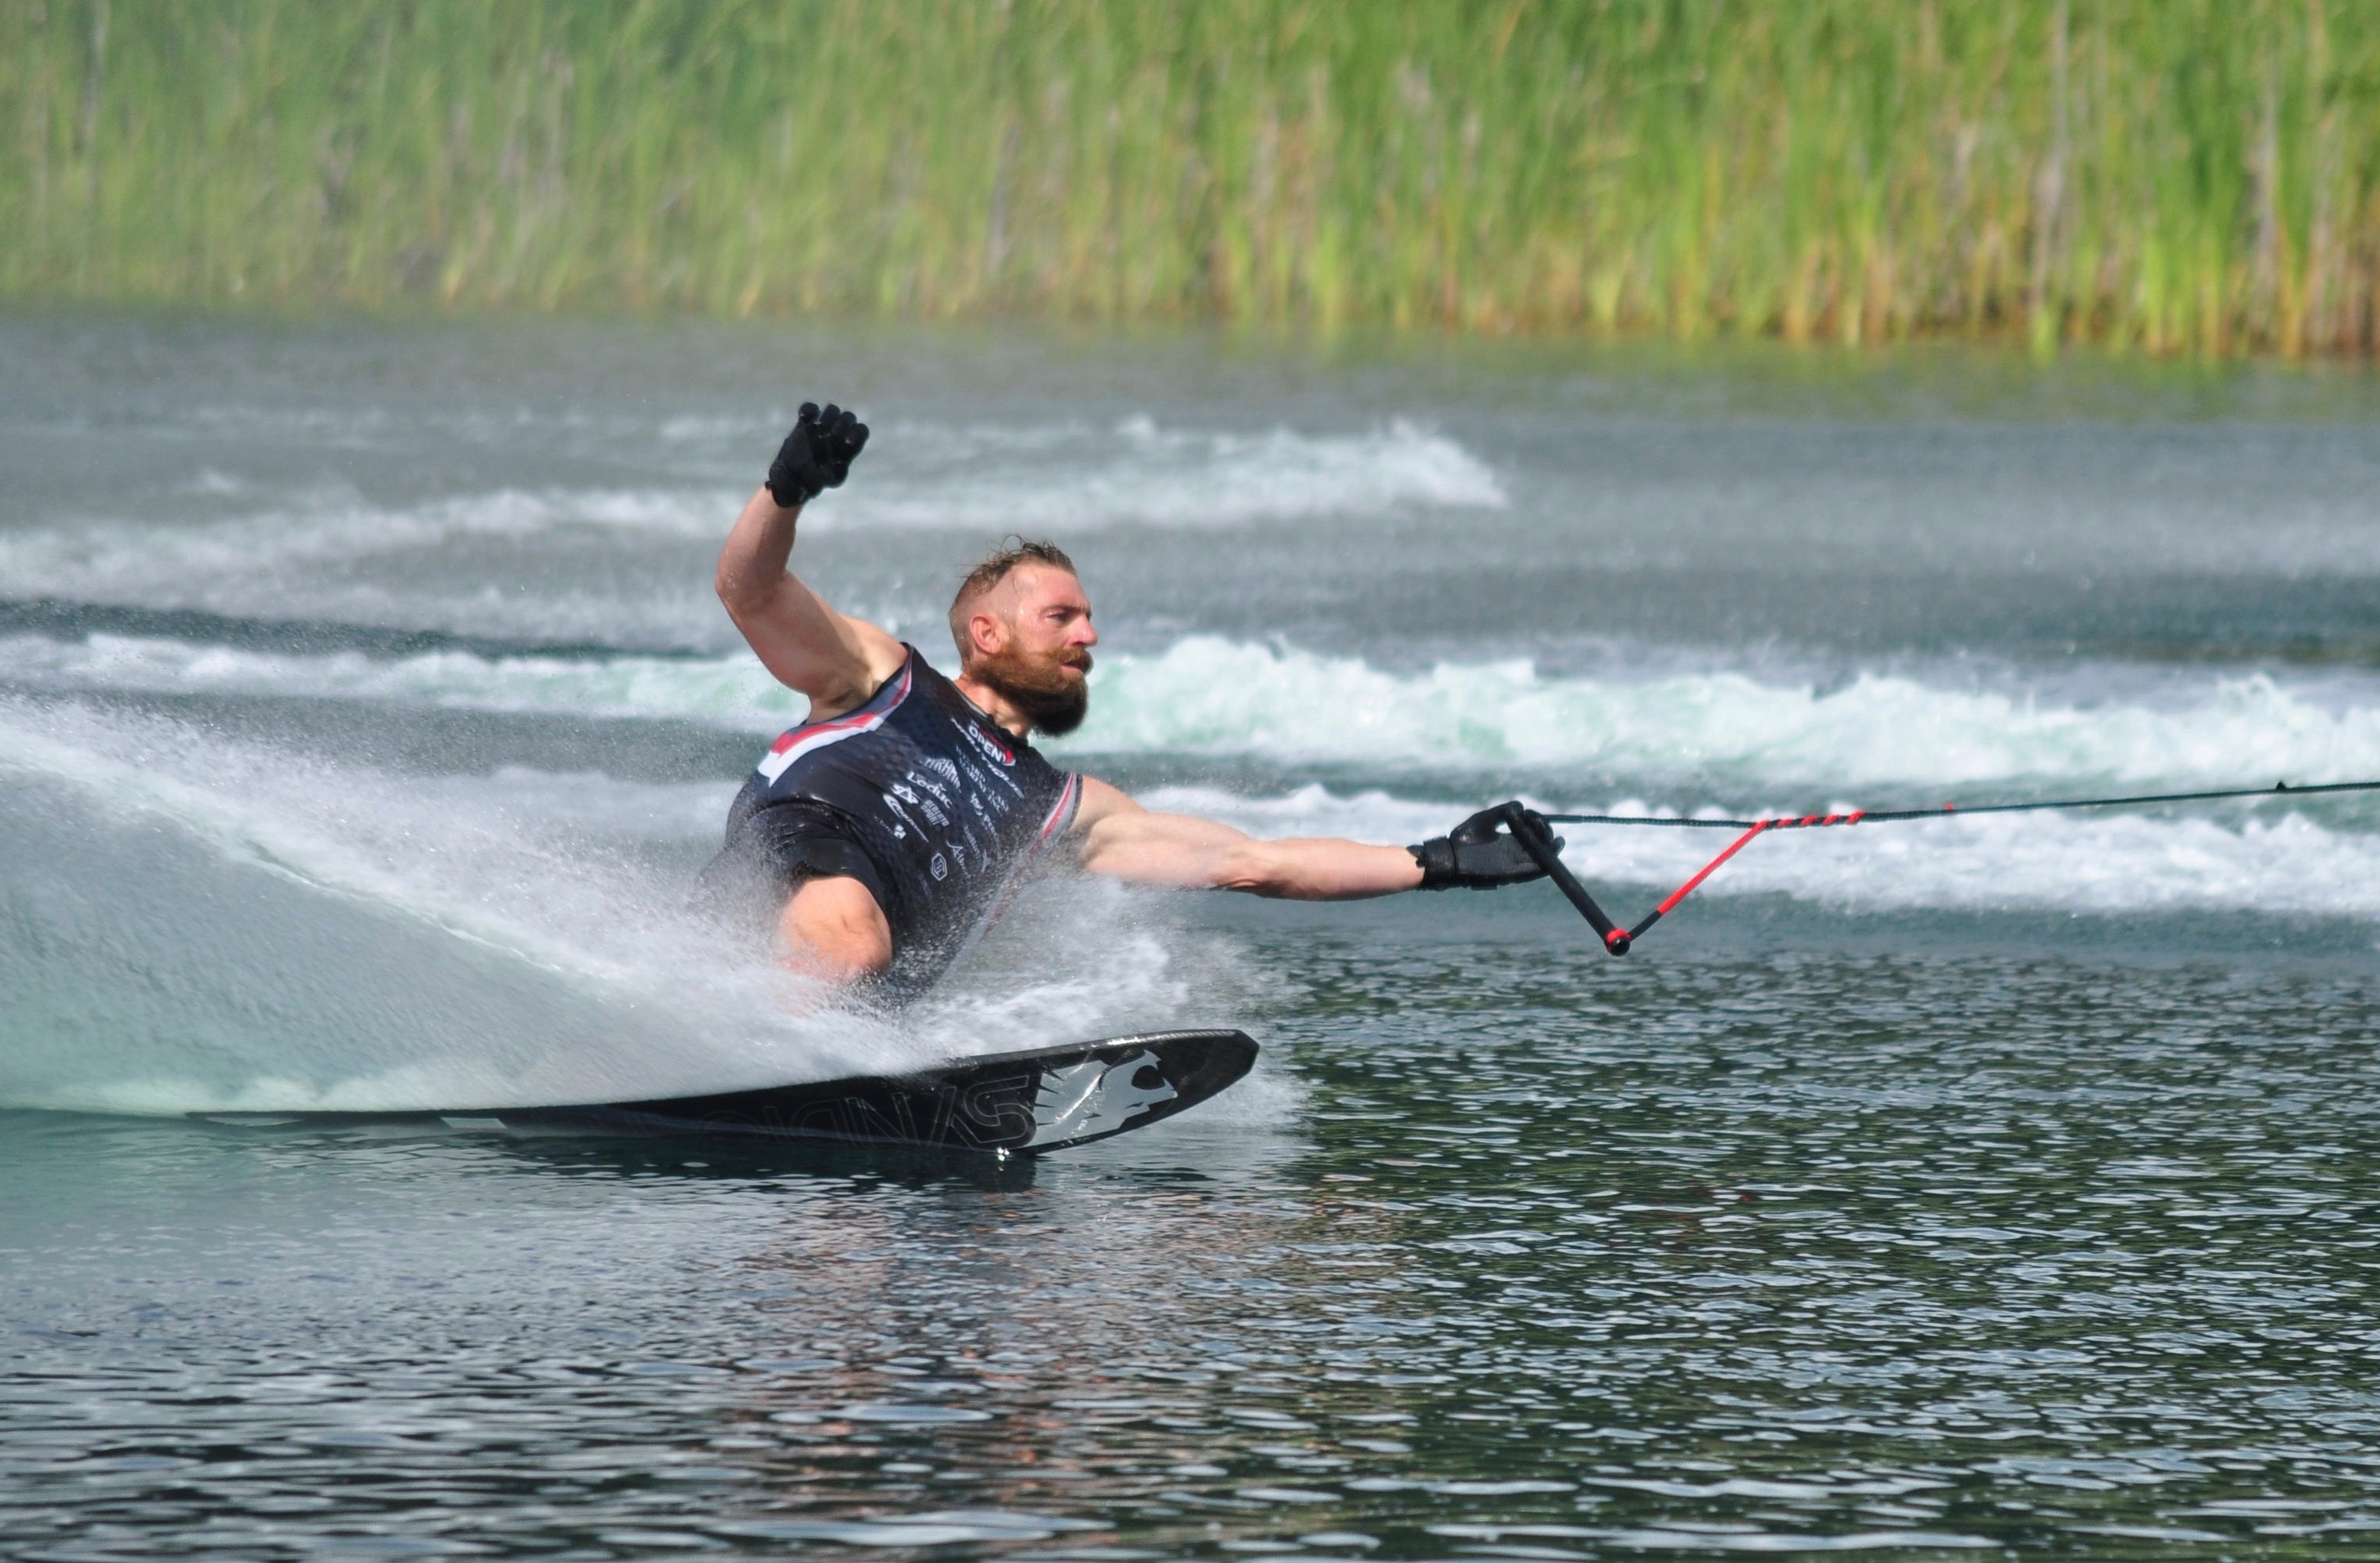 Asher ran 3@41/36 at the Canadian Waterski Open